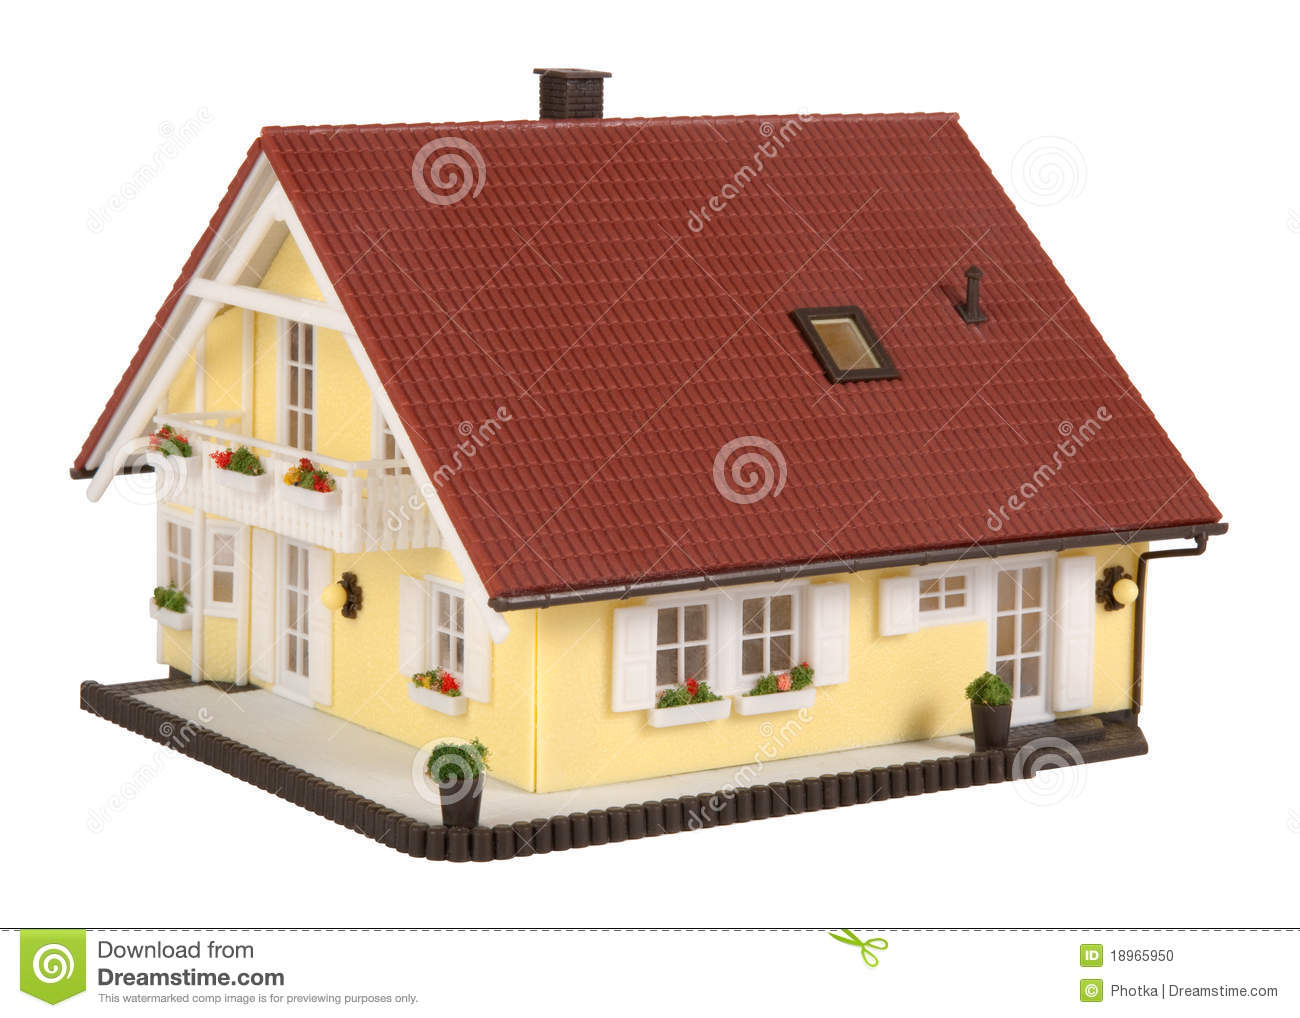 Model house images